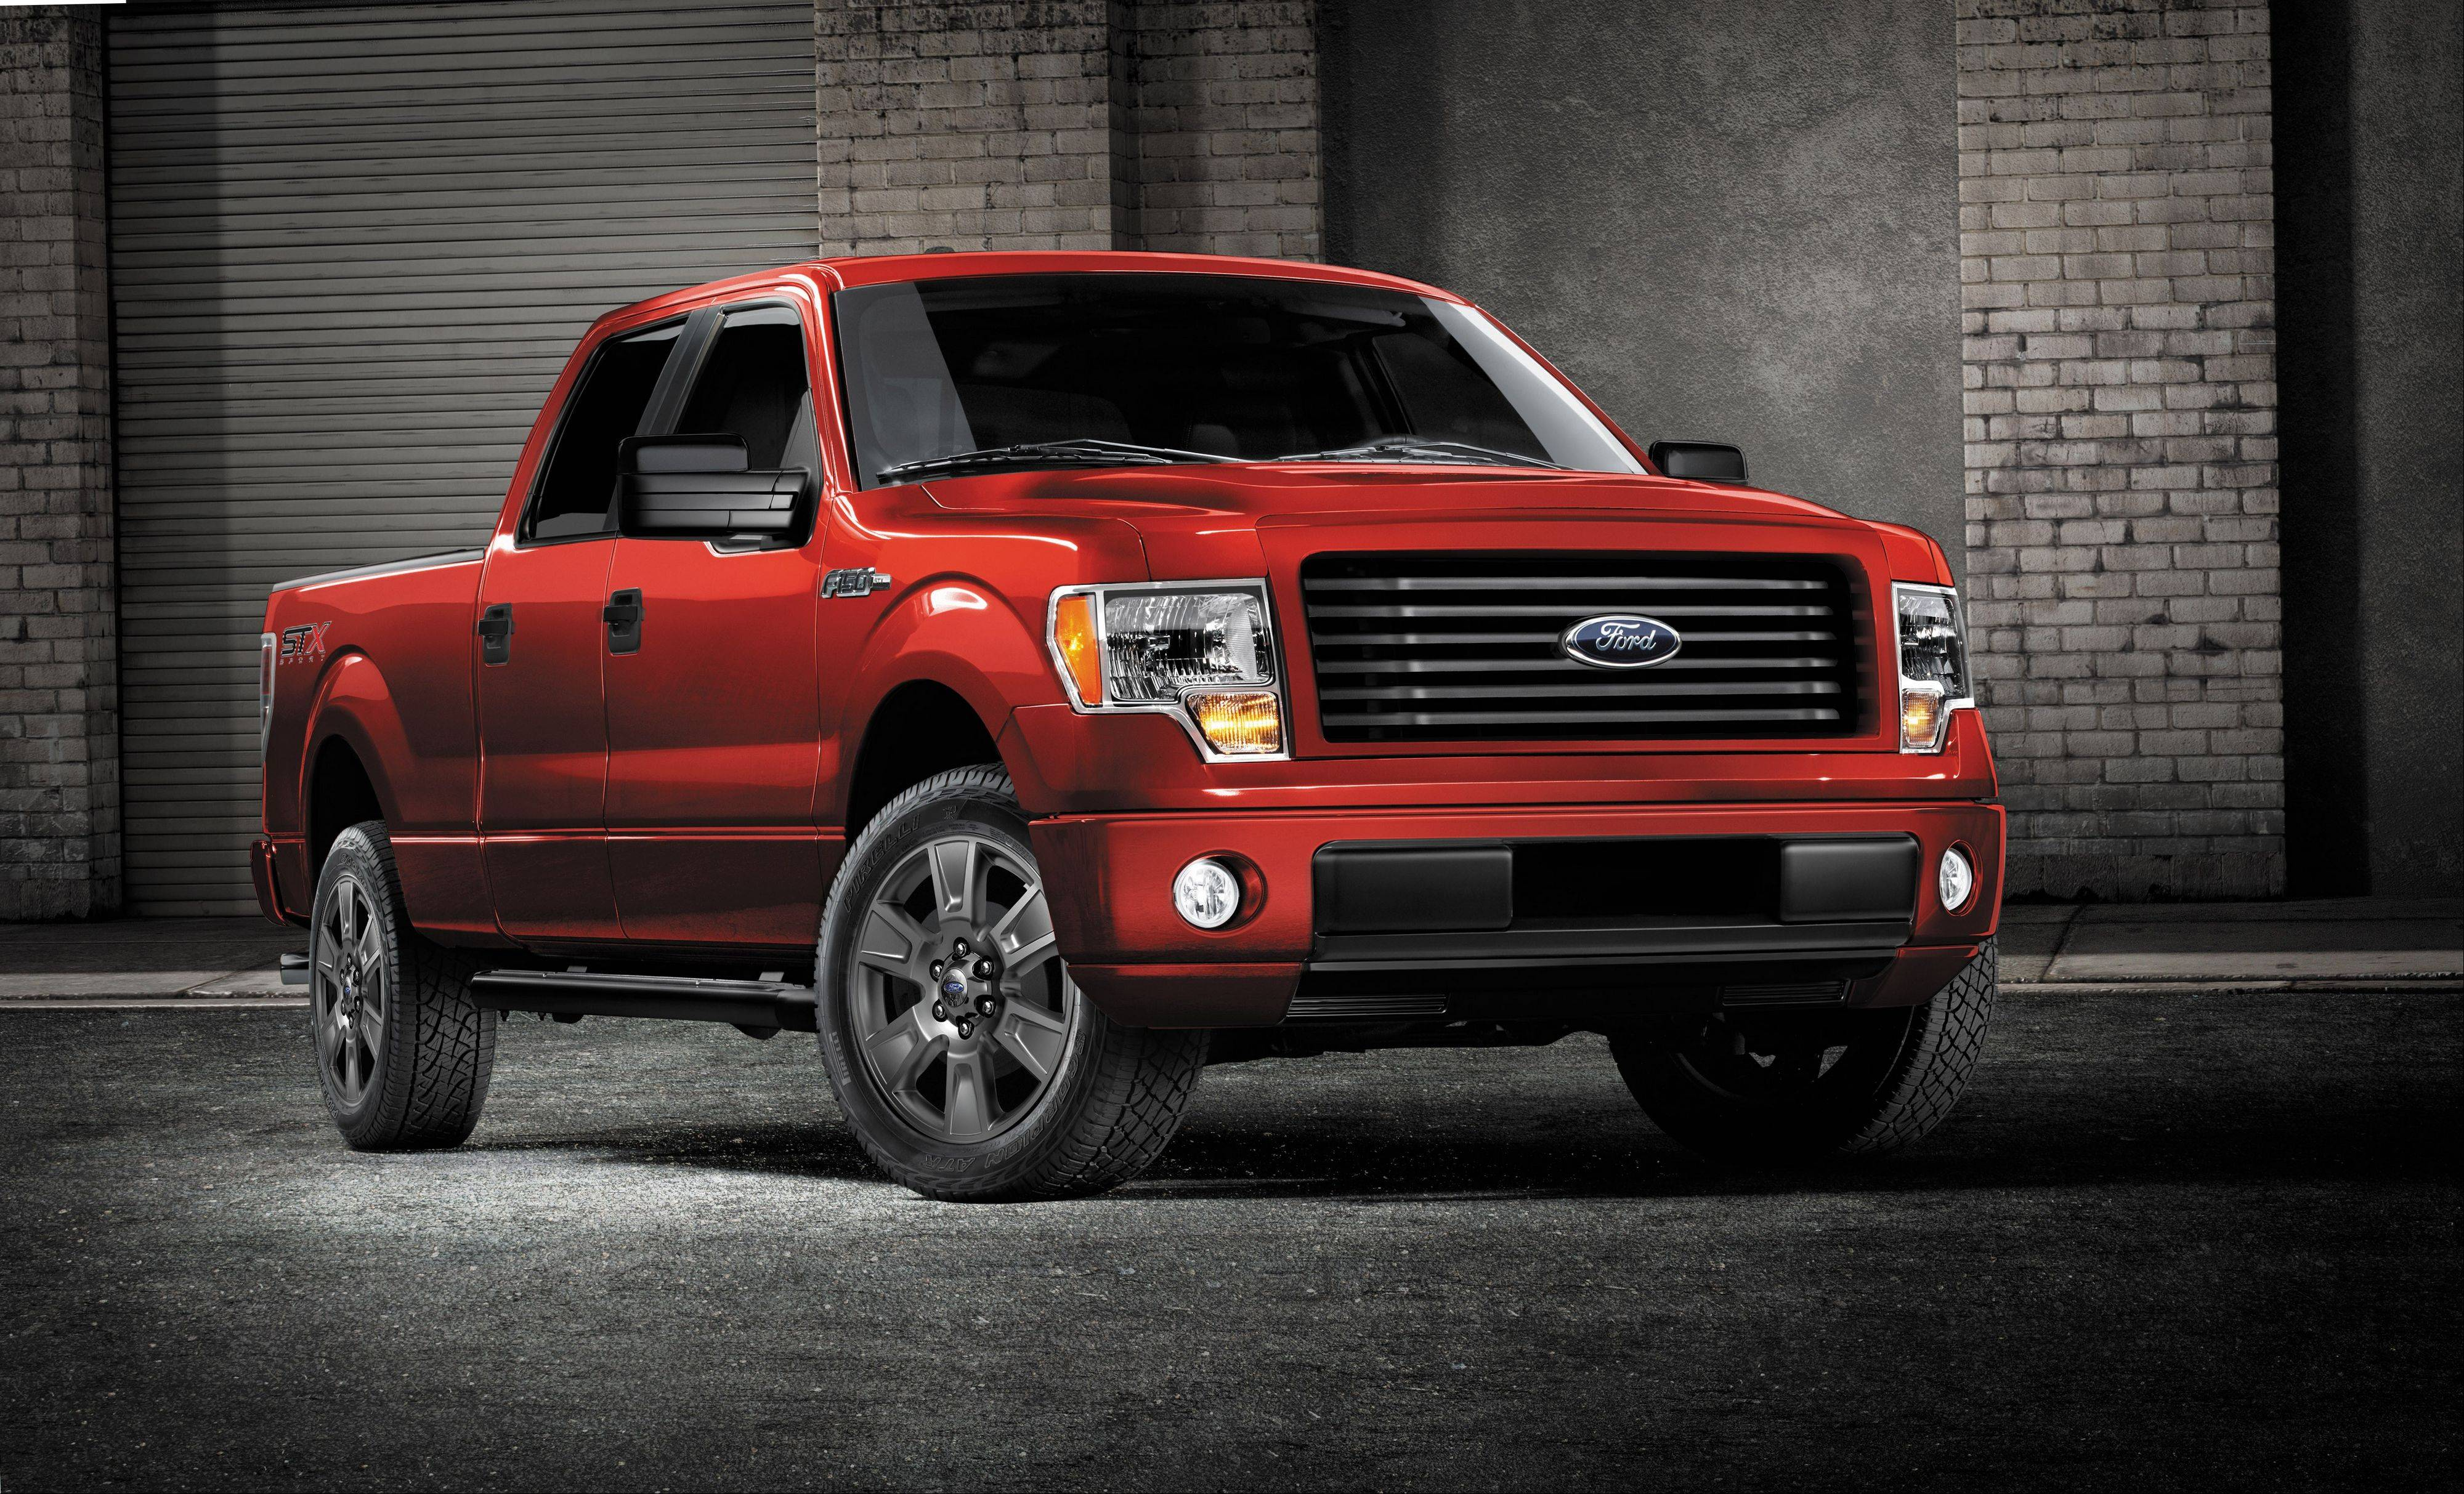 The 2014 Ford F-150 STX SuperCrew truck. Ford will add a four-door cab to its F-150 STX line ths fall.